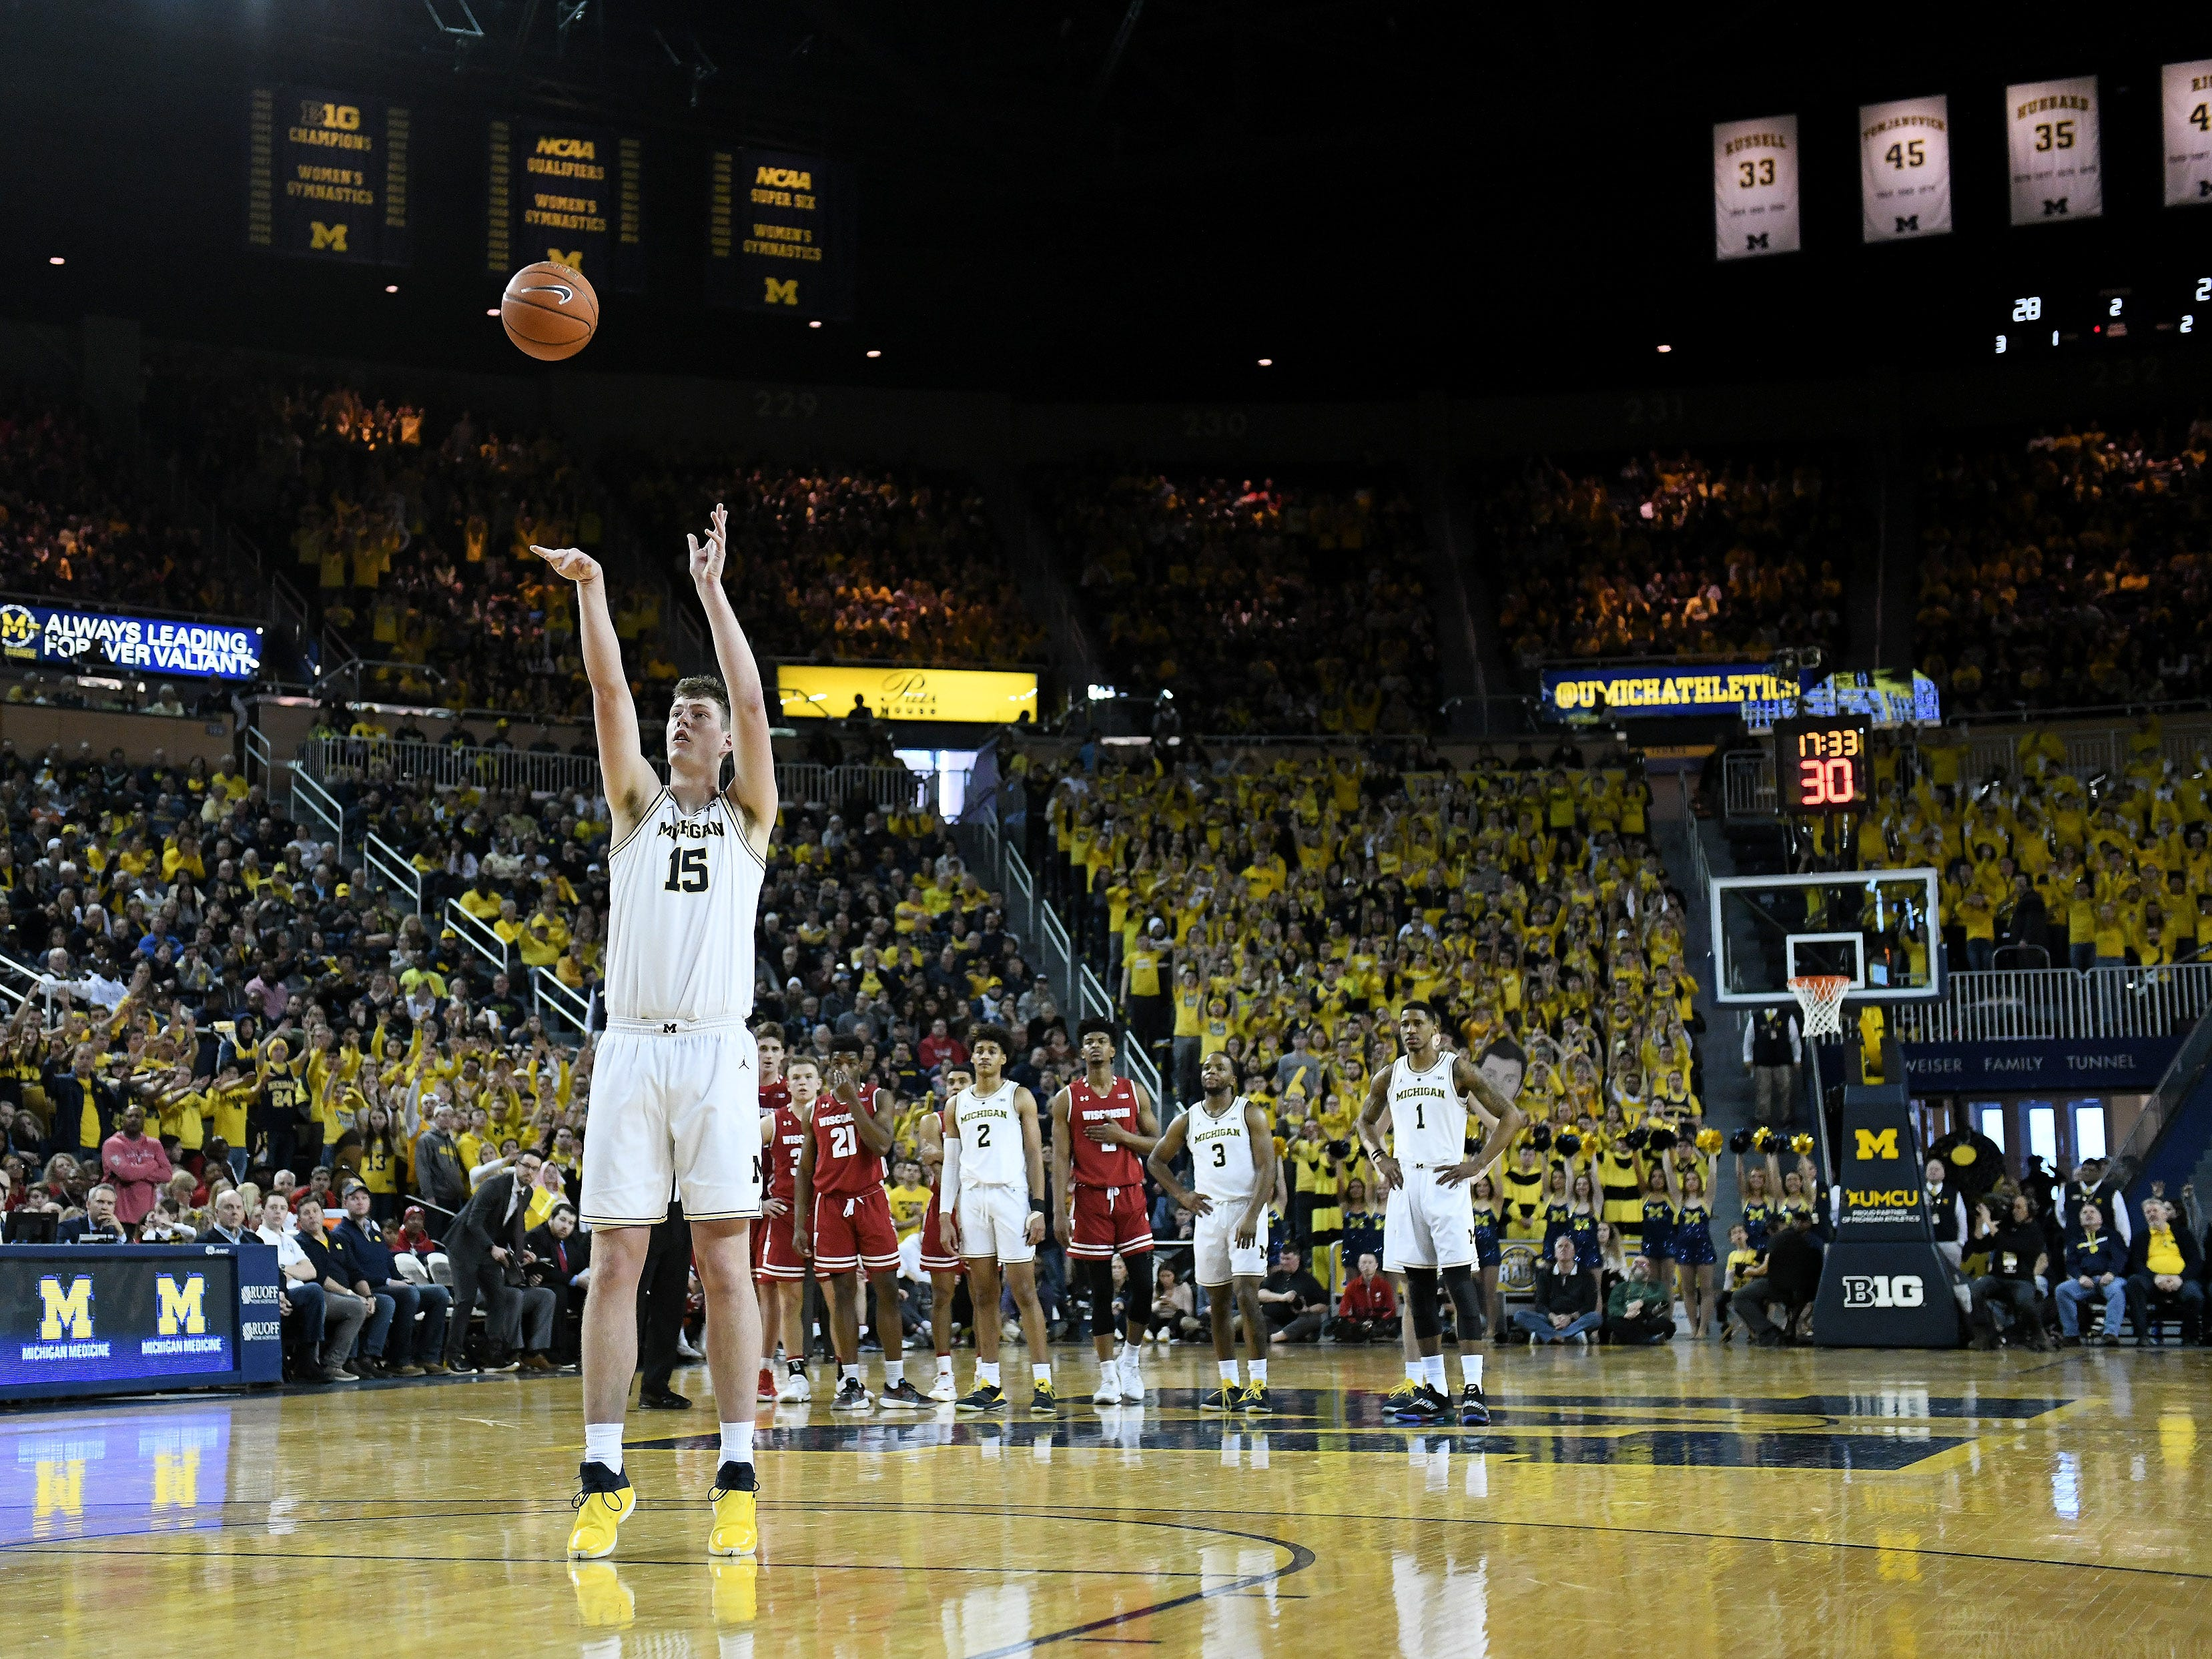 Michigan center Jon Teske (15) shoots and makes a flagrant foul free throw in the second half.